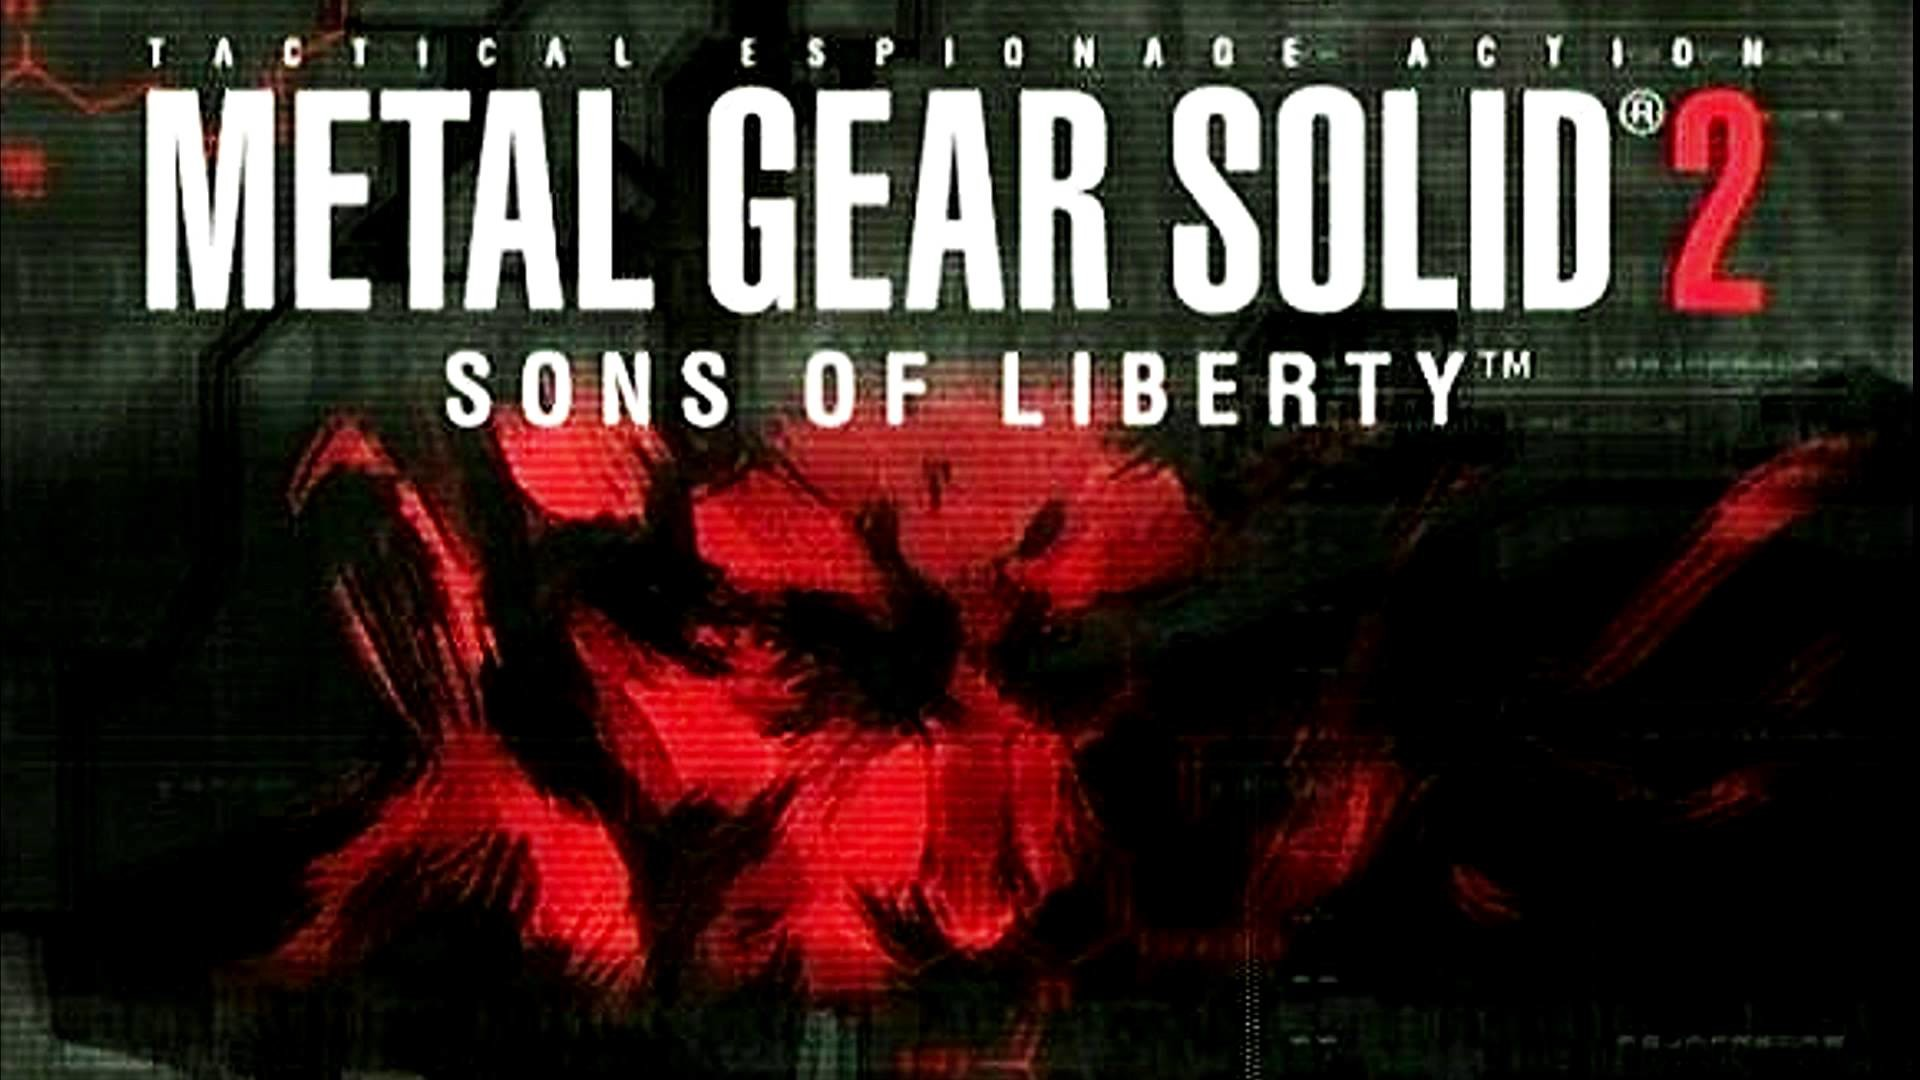 1920x1200 0 350x219 380 Metal Gear Solid HD Wallpapers Background Images 40